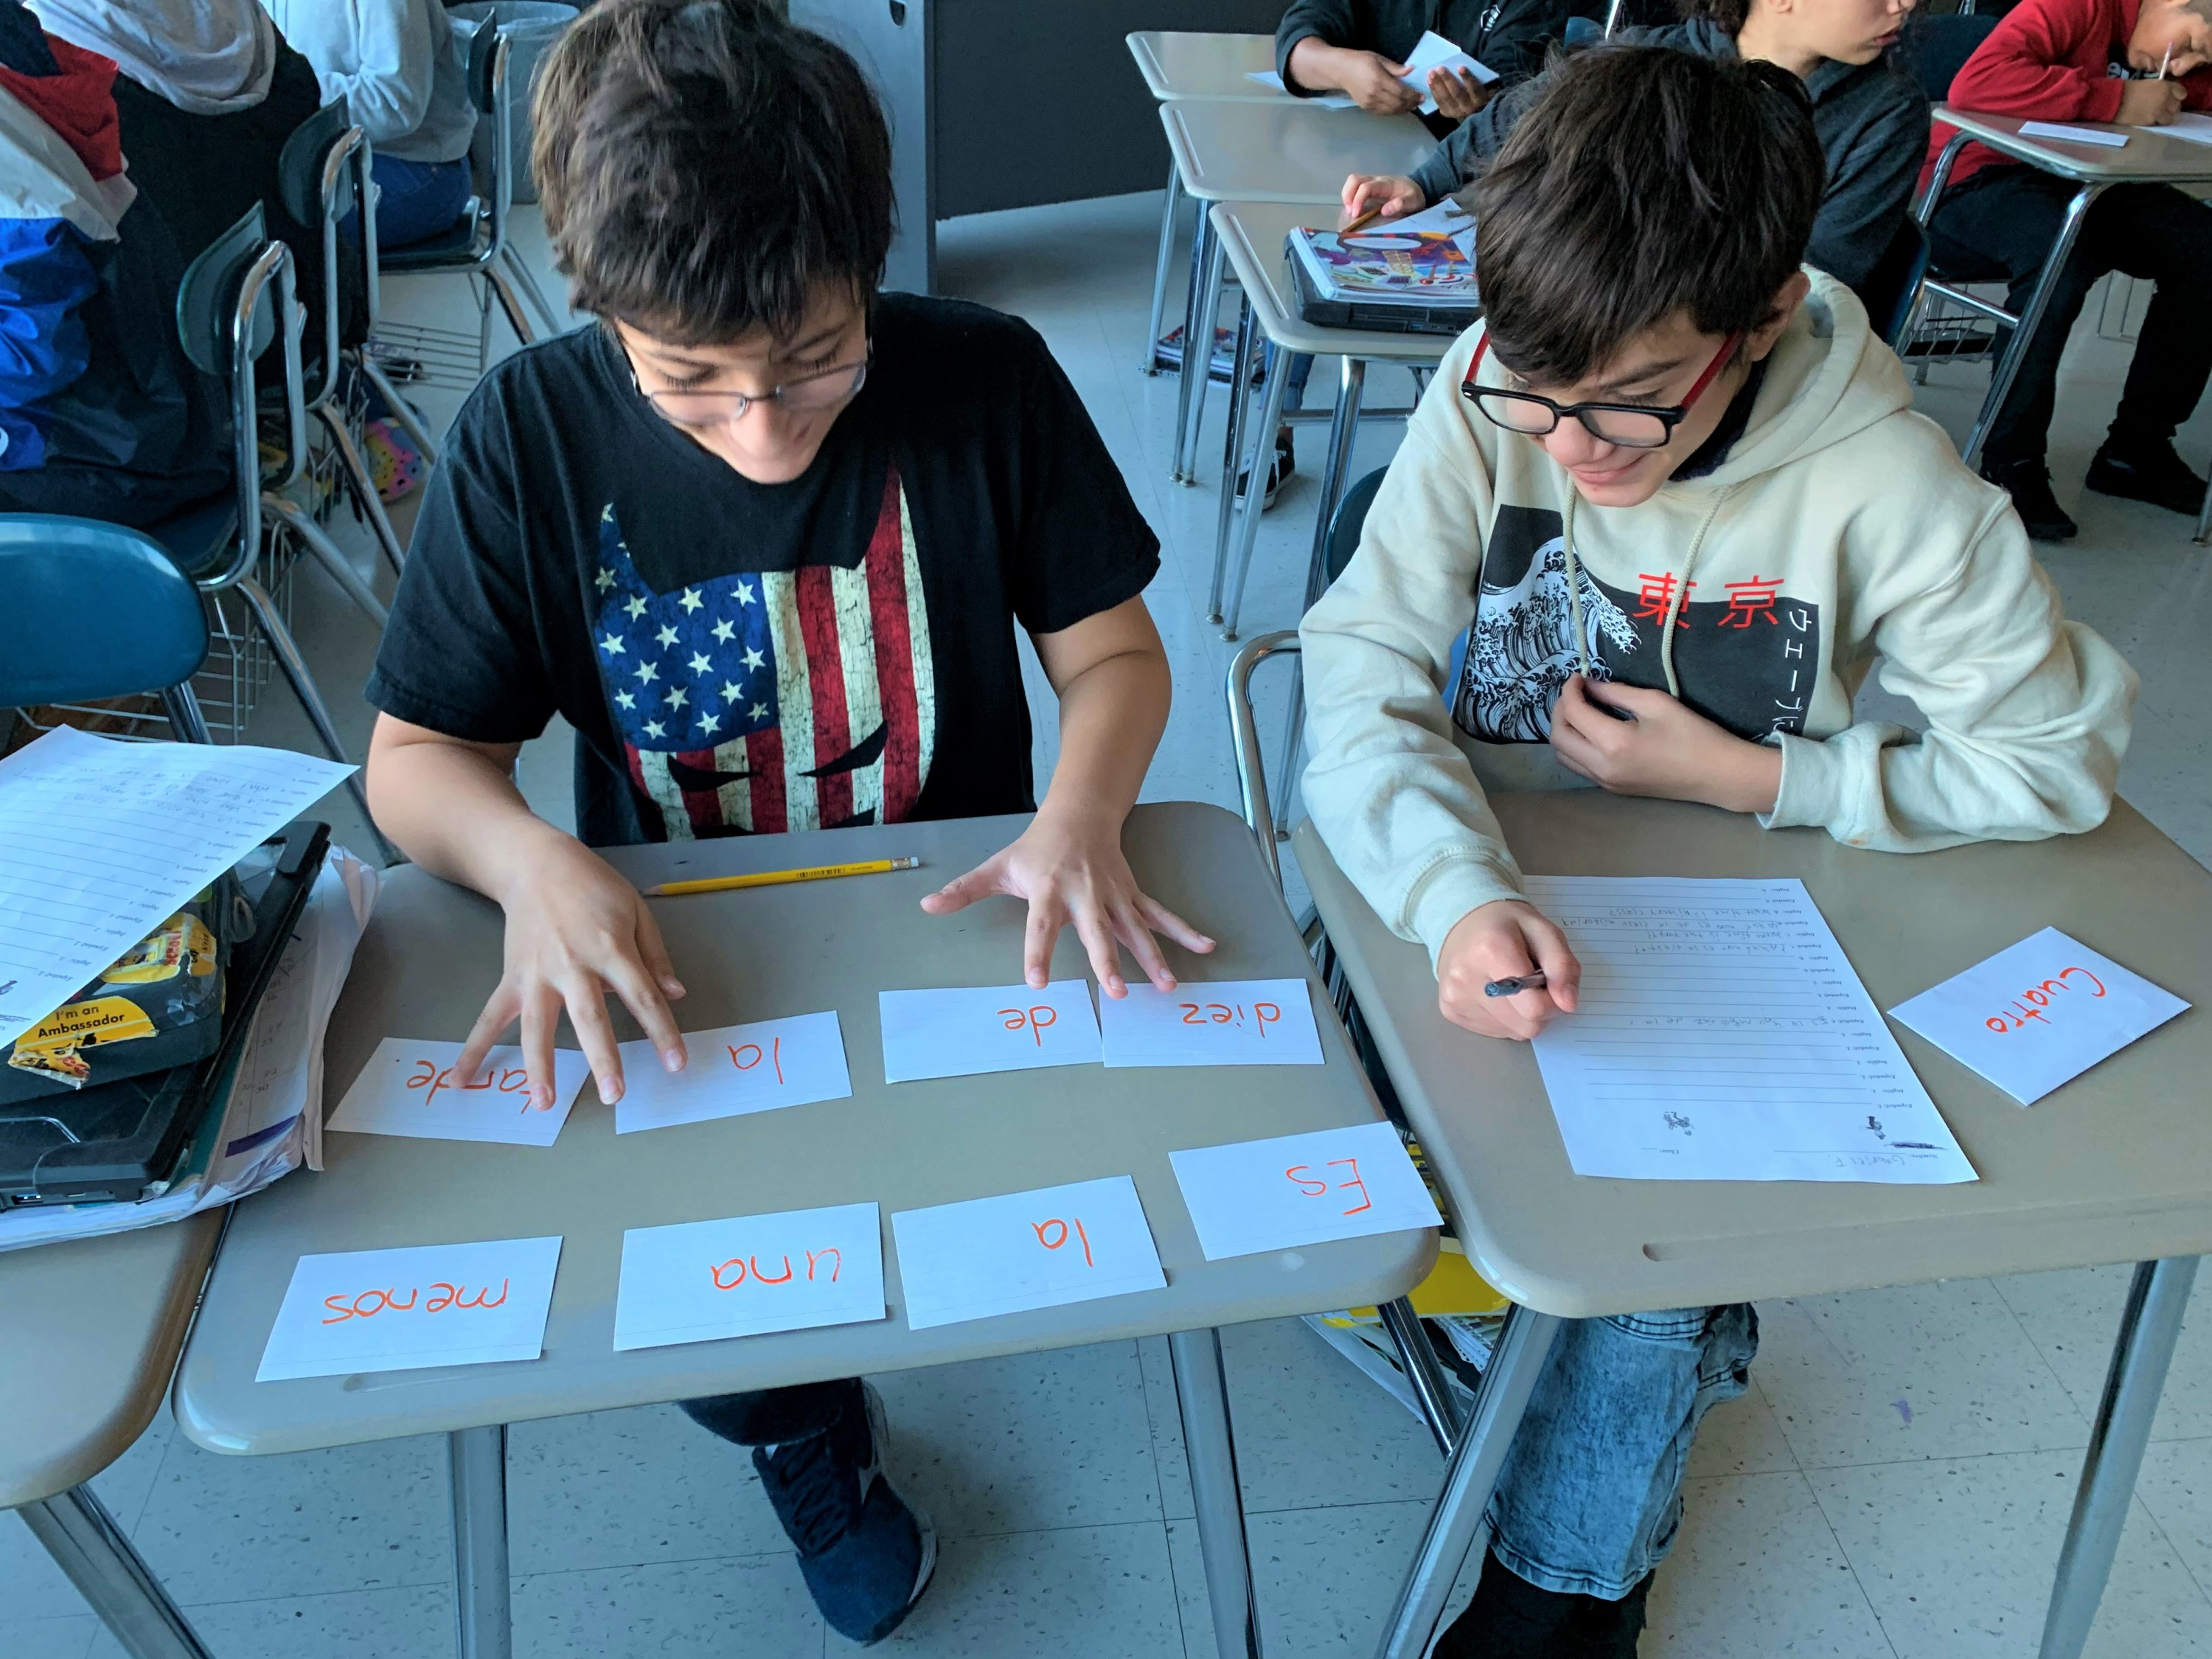 Students arranging vocabulary flash cards